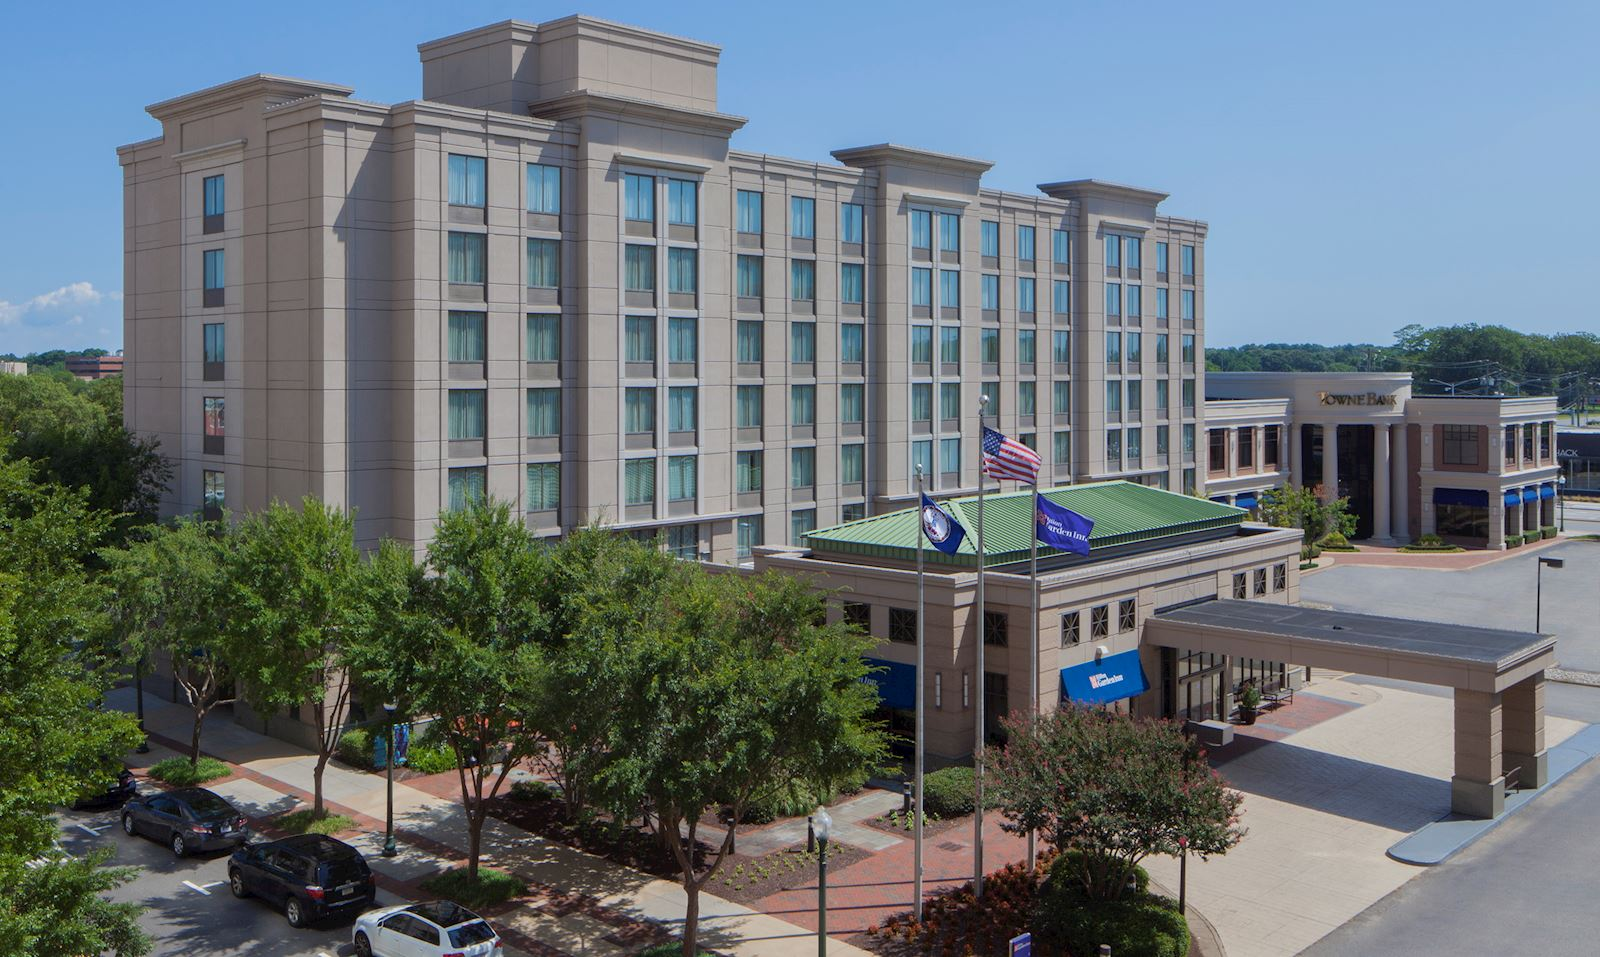 hilton garden inn virginia beach town center remington hotels - Hilton Garden Inn Virginia Beach Town Center